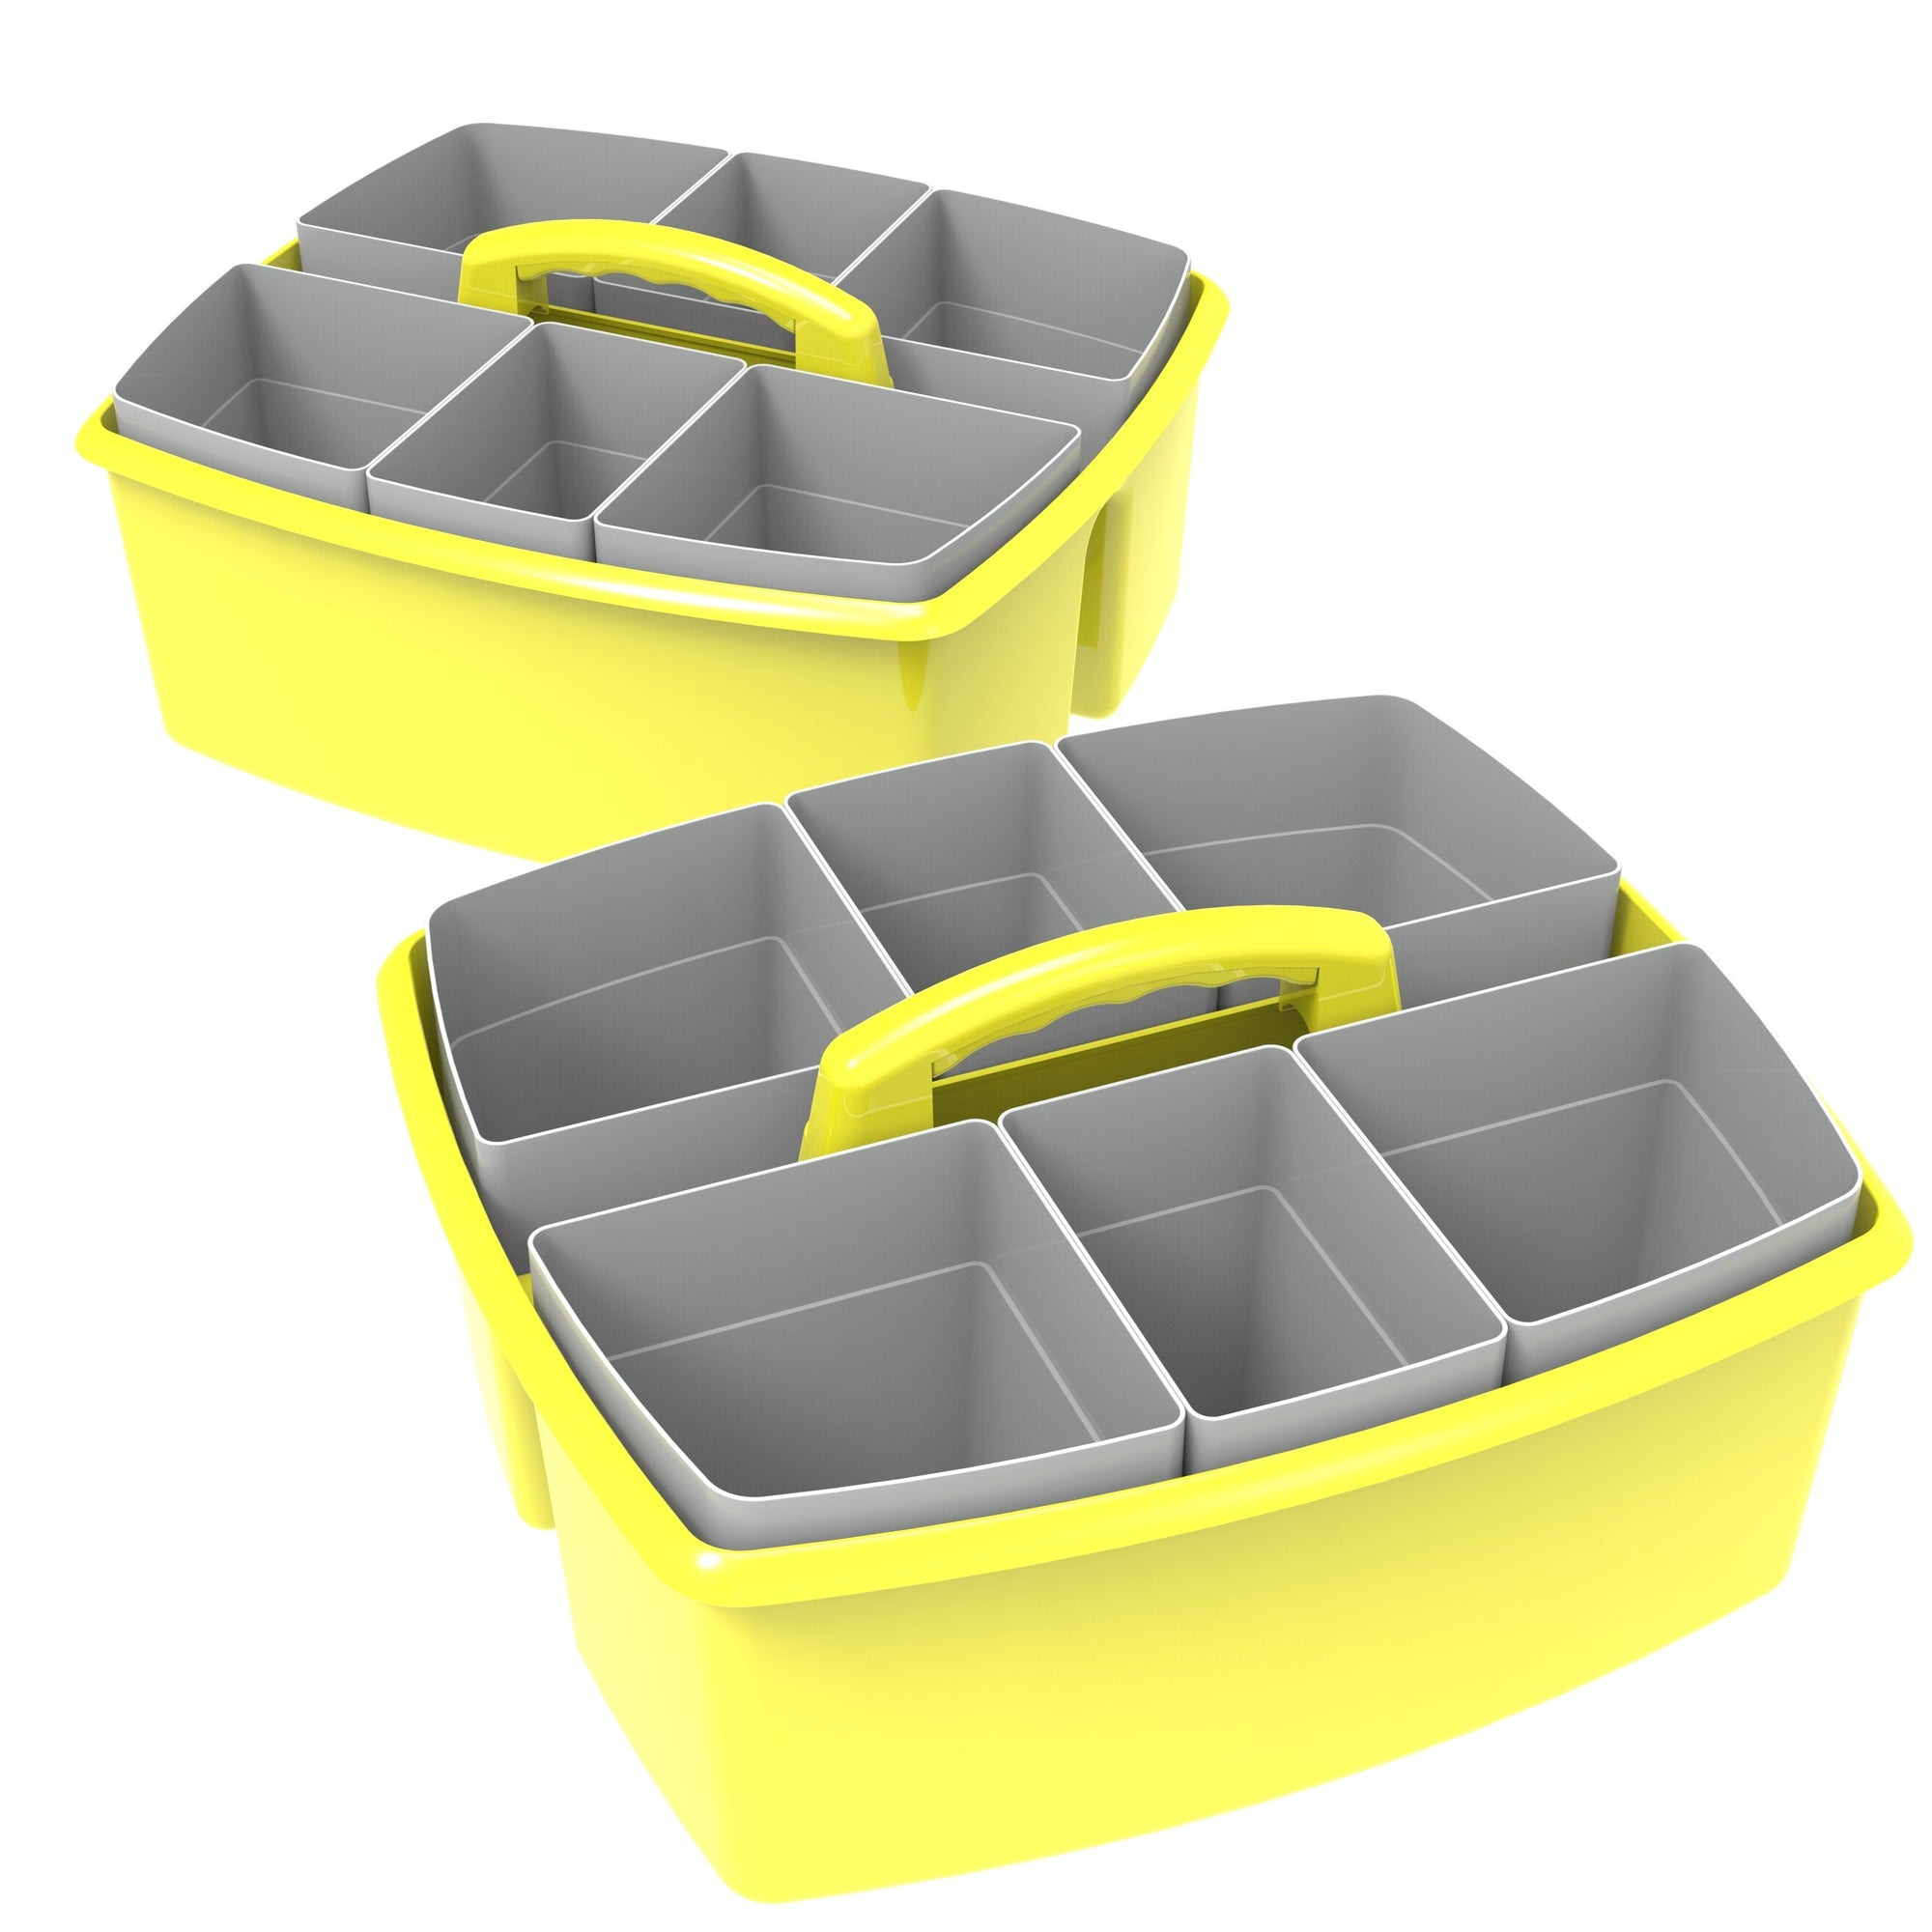 Storex Large Caddy with Sorting Cups, Yellow, 2-Pack